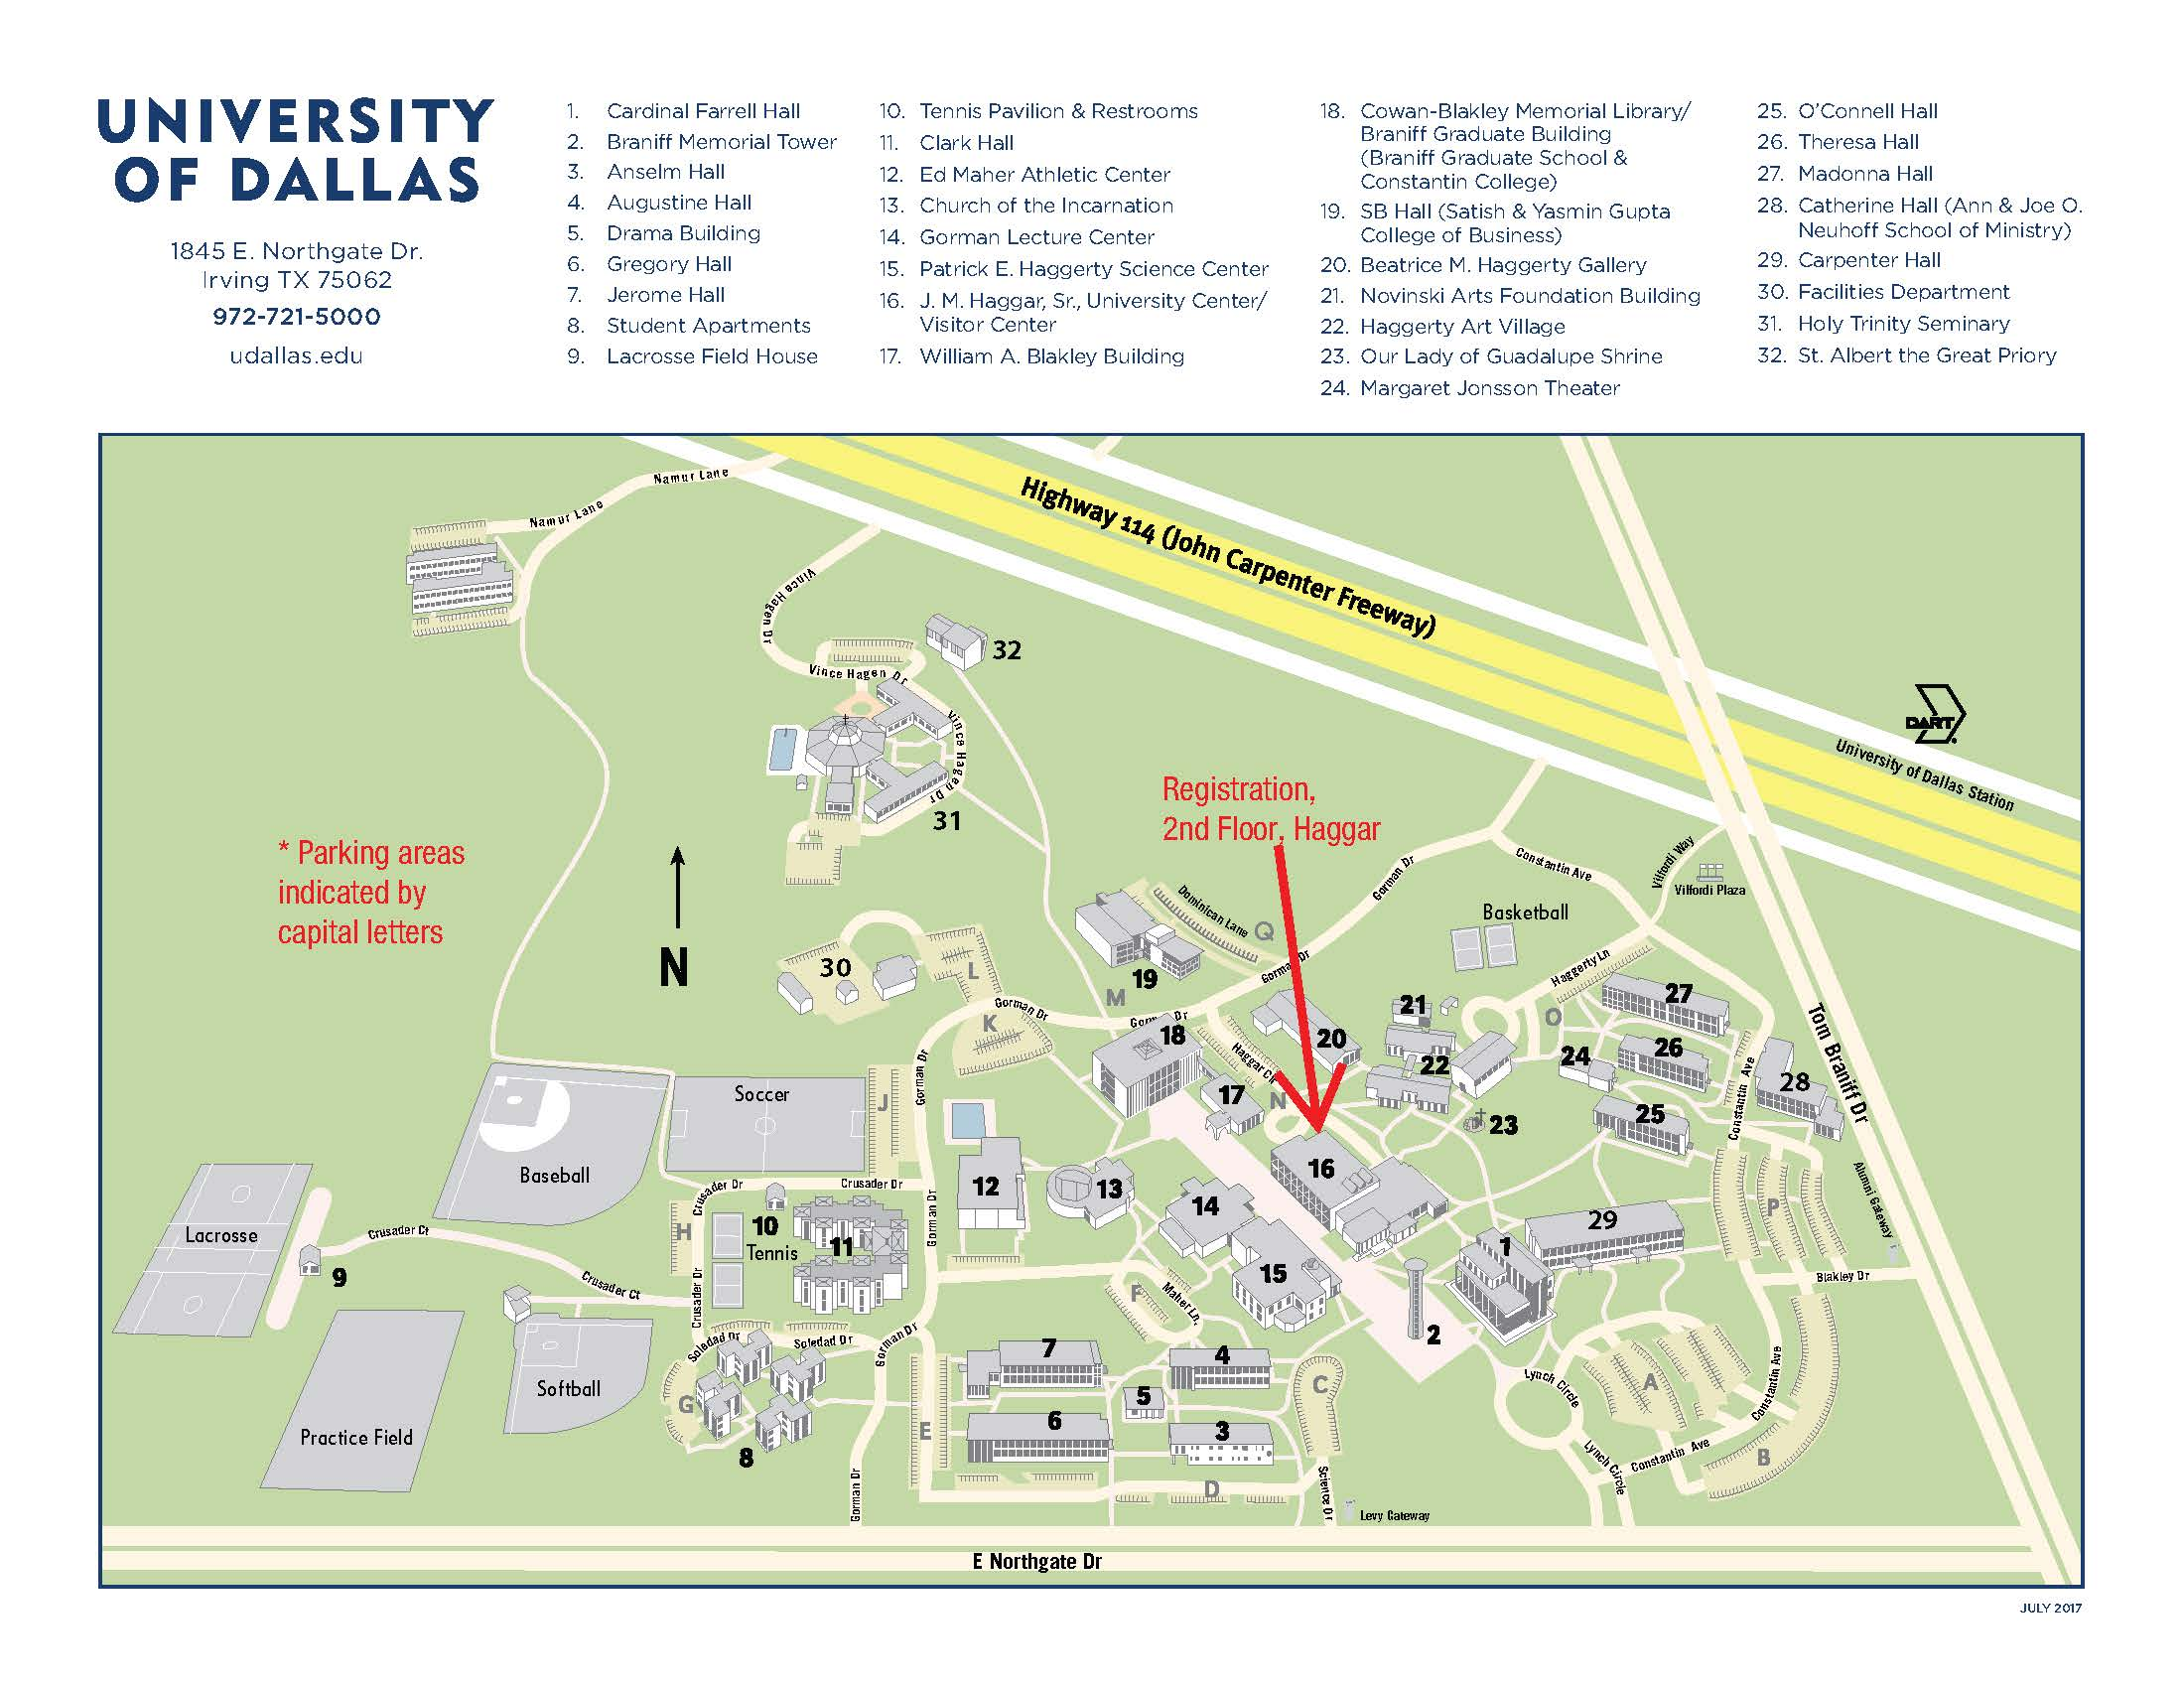 ud-map